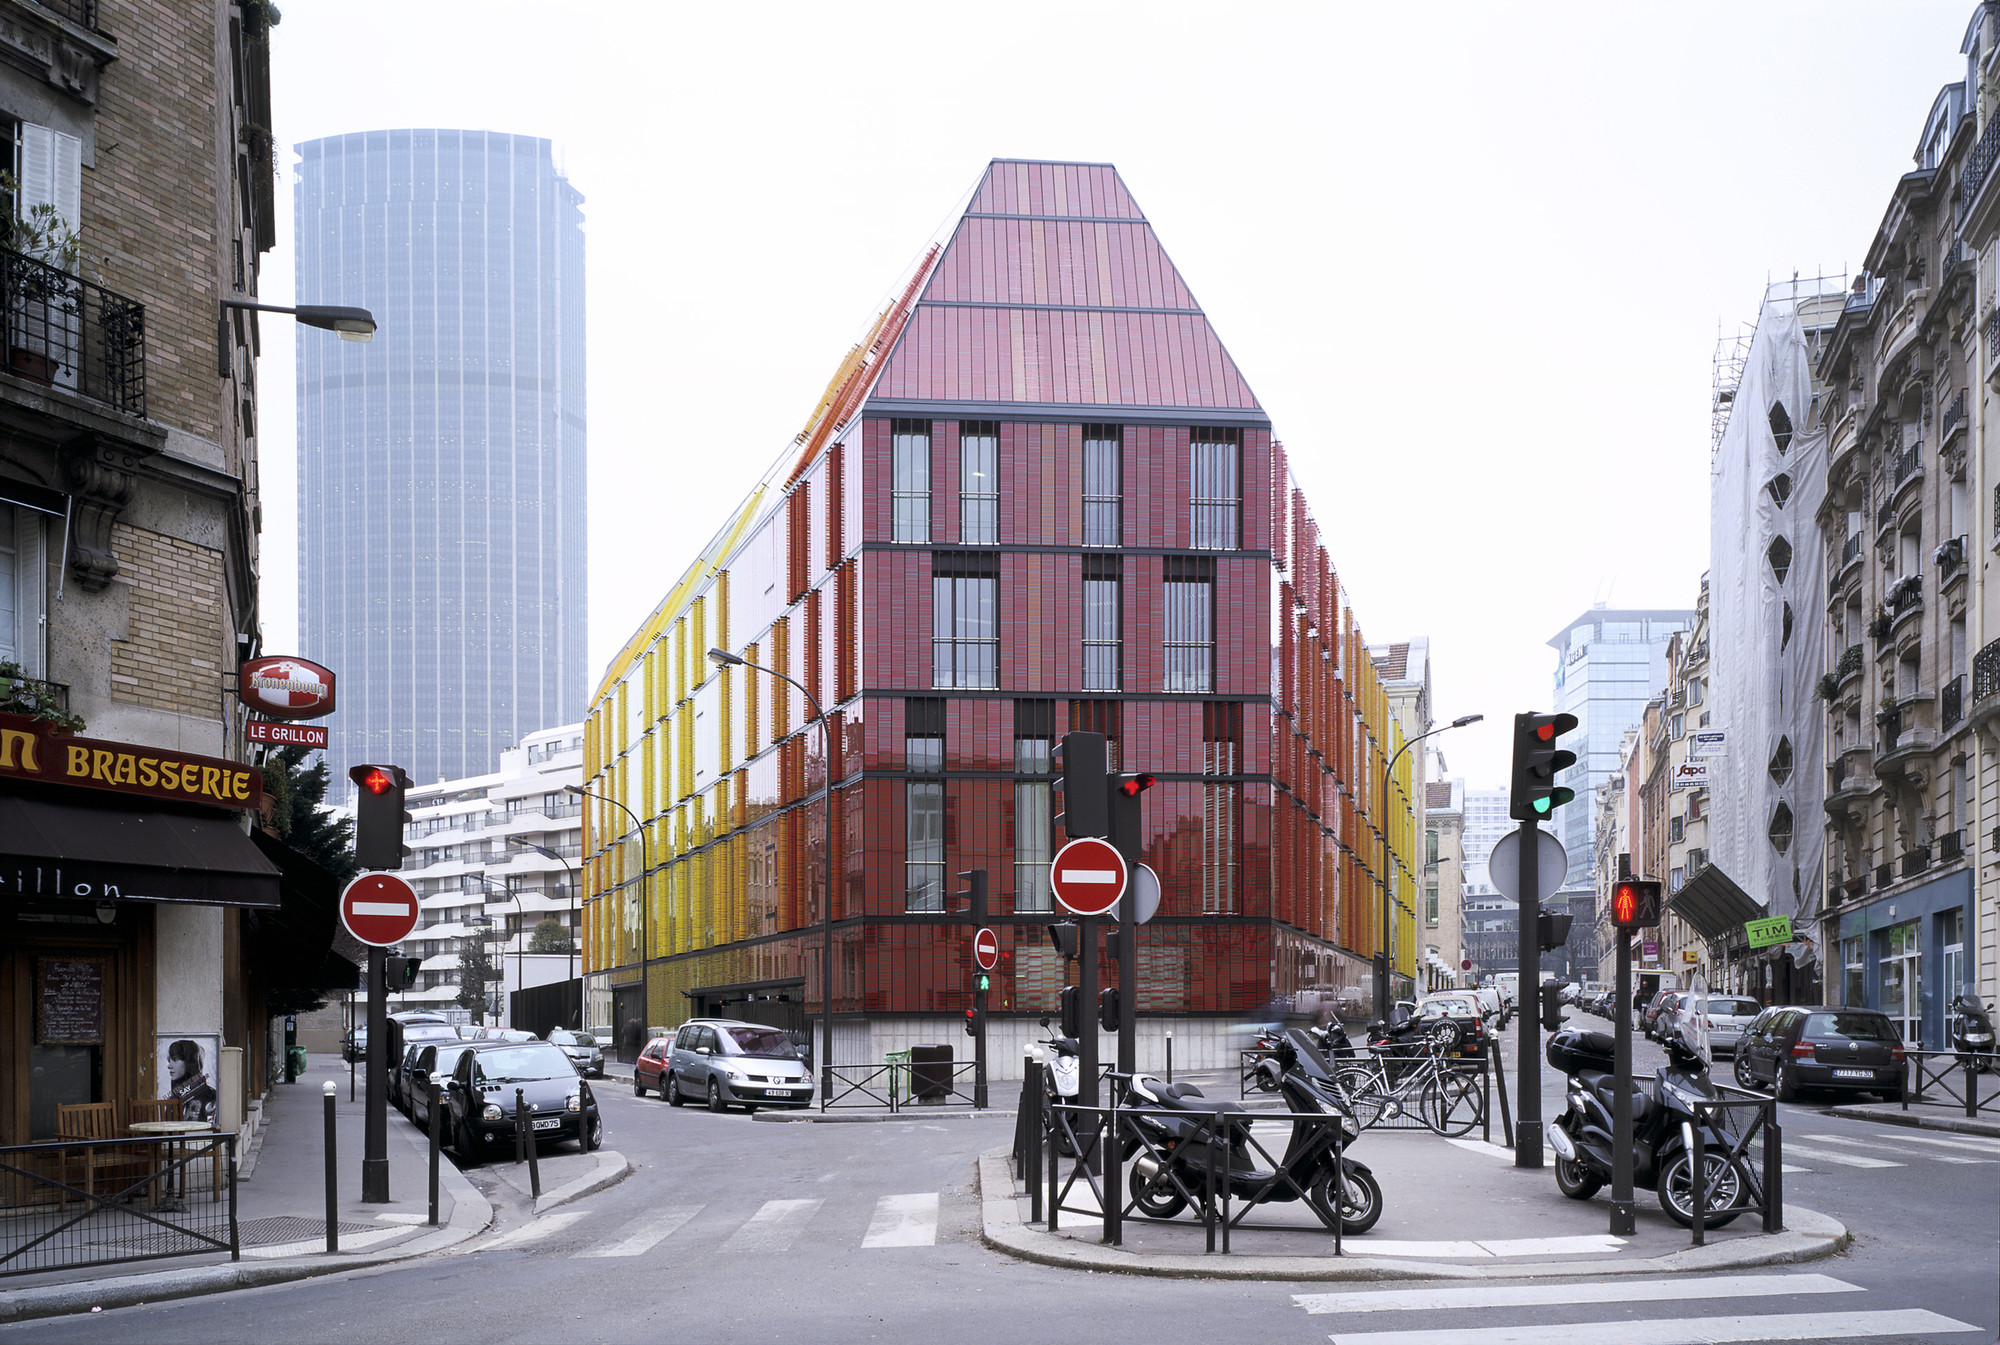 Architecture School Studio novancia business school / architecture-studio | archdaily